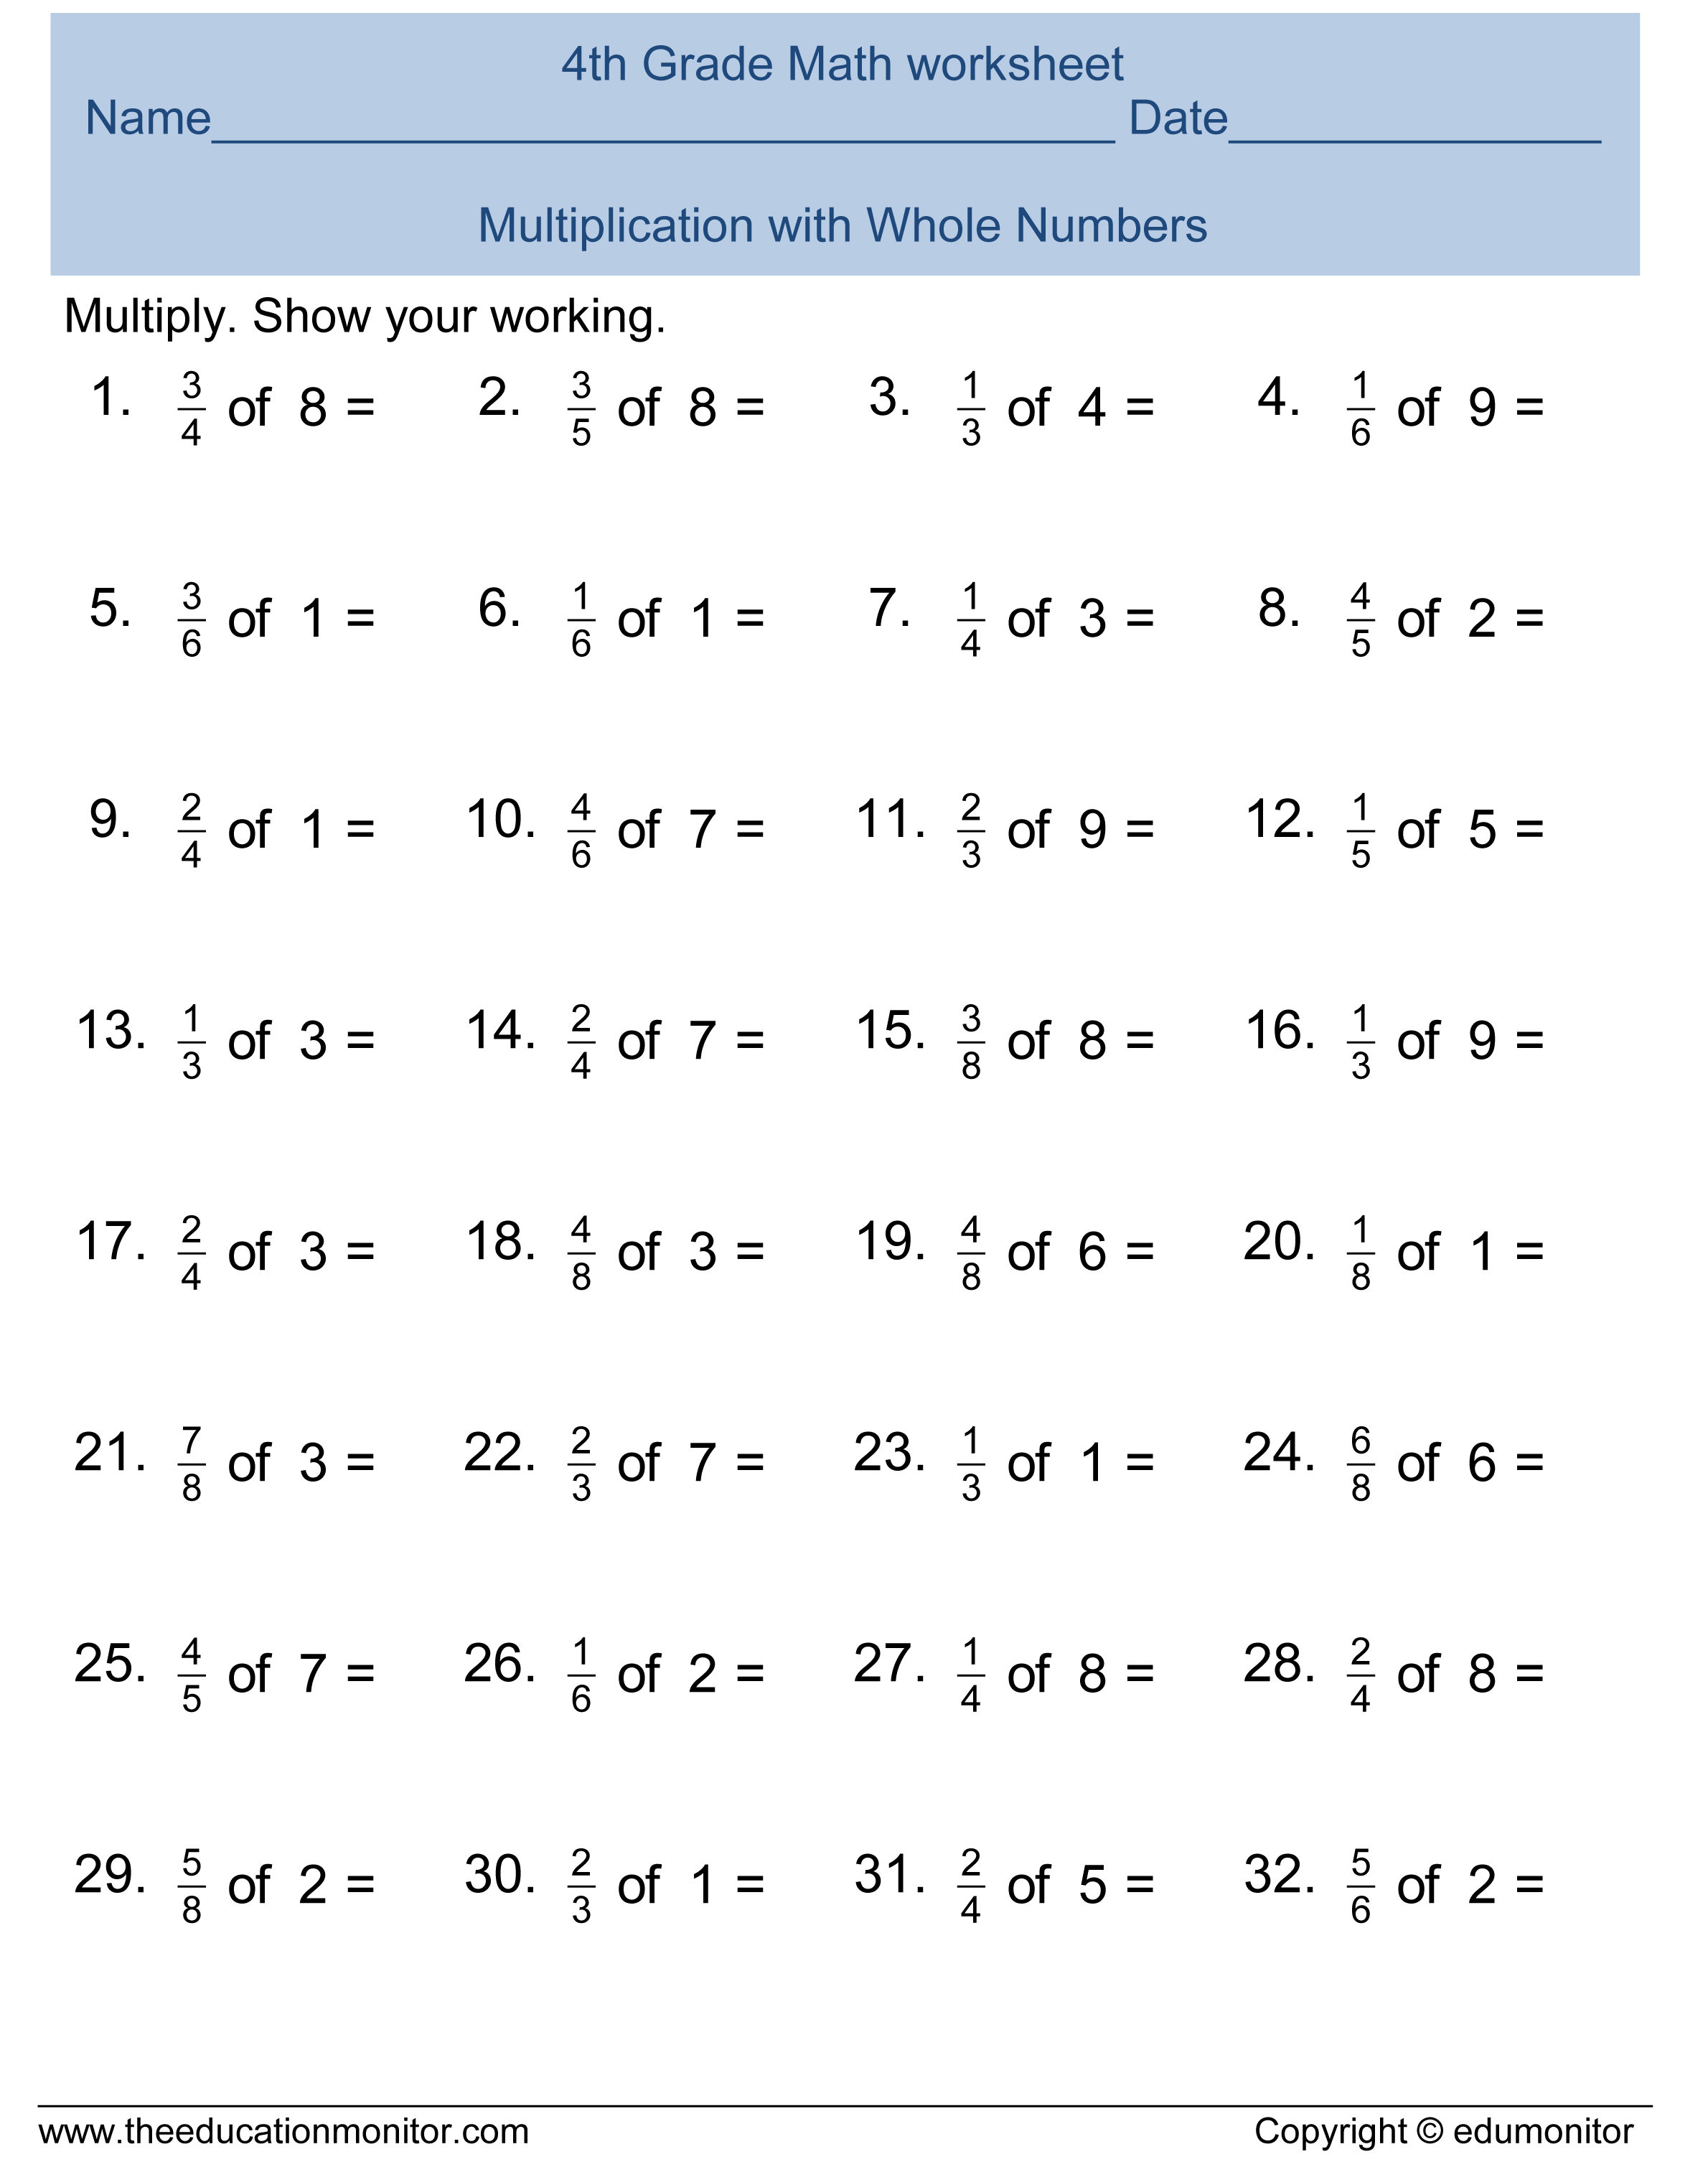 Printables Math For Fourth Grade Worksheets math worksheets 4th grade subtraction 4 free printable k5 learning